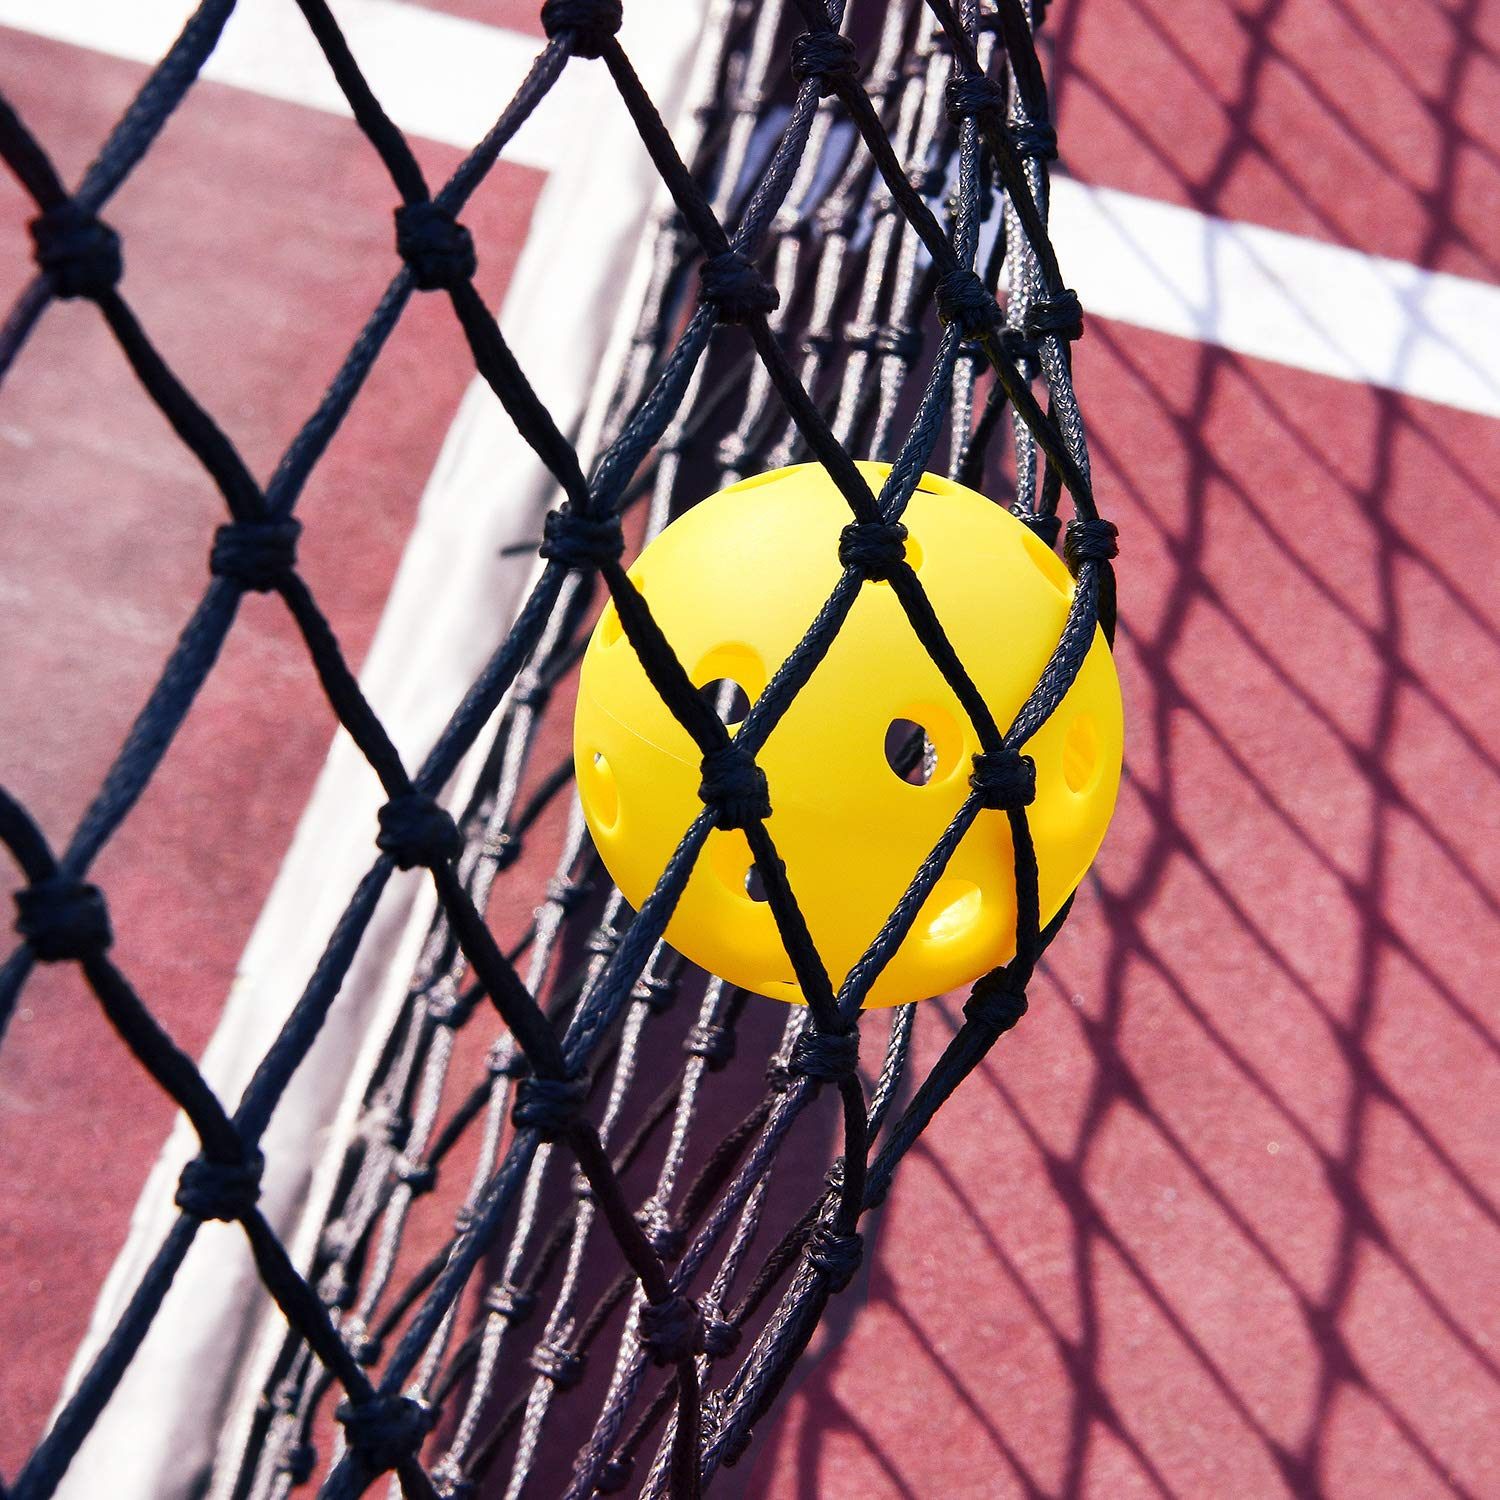 GRM Indoor or Outdoor Pickleball Balls Yellow 26 or 40 Holes Pickleball Ball Pack of 3